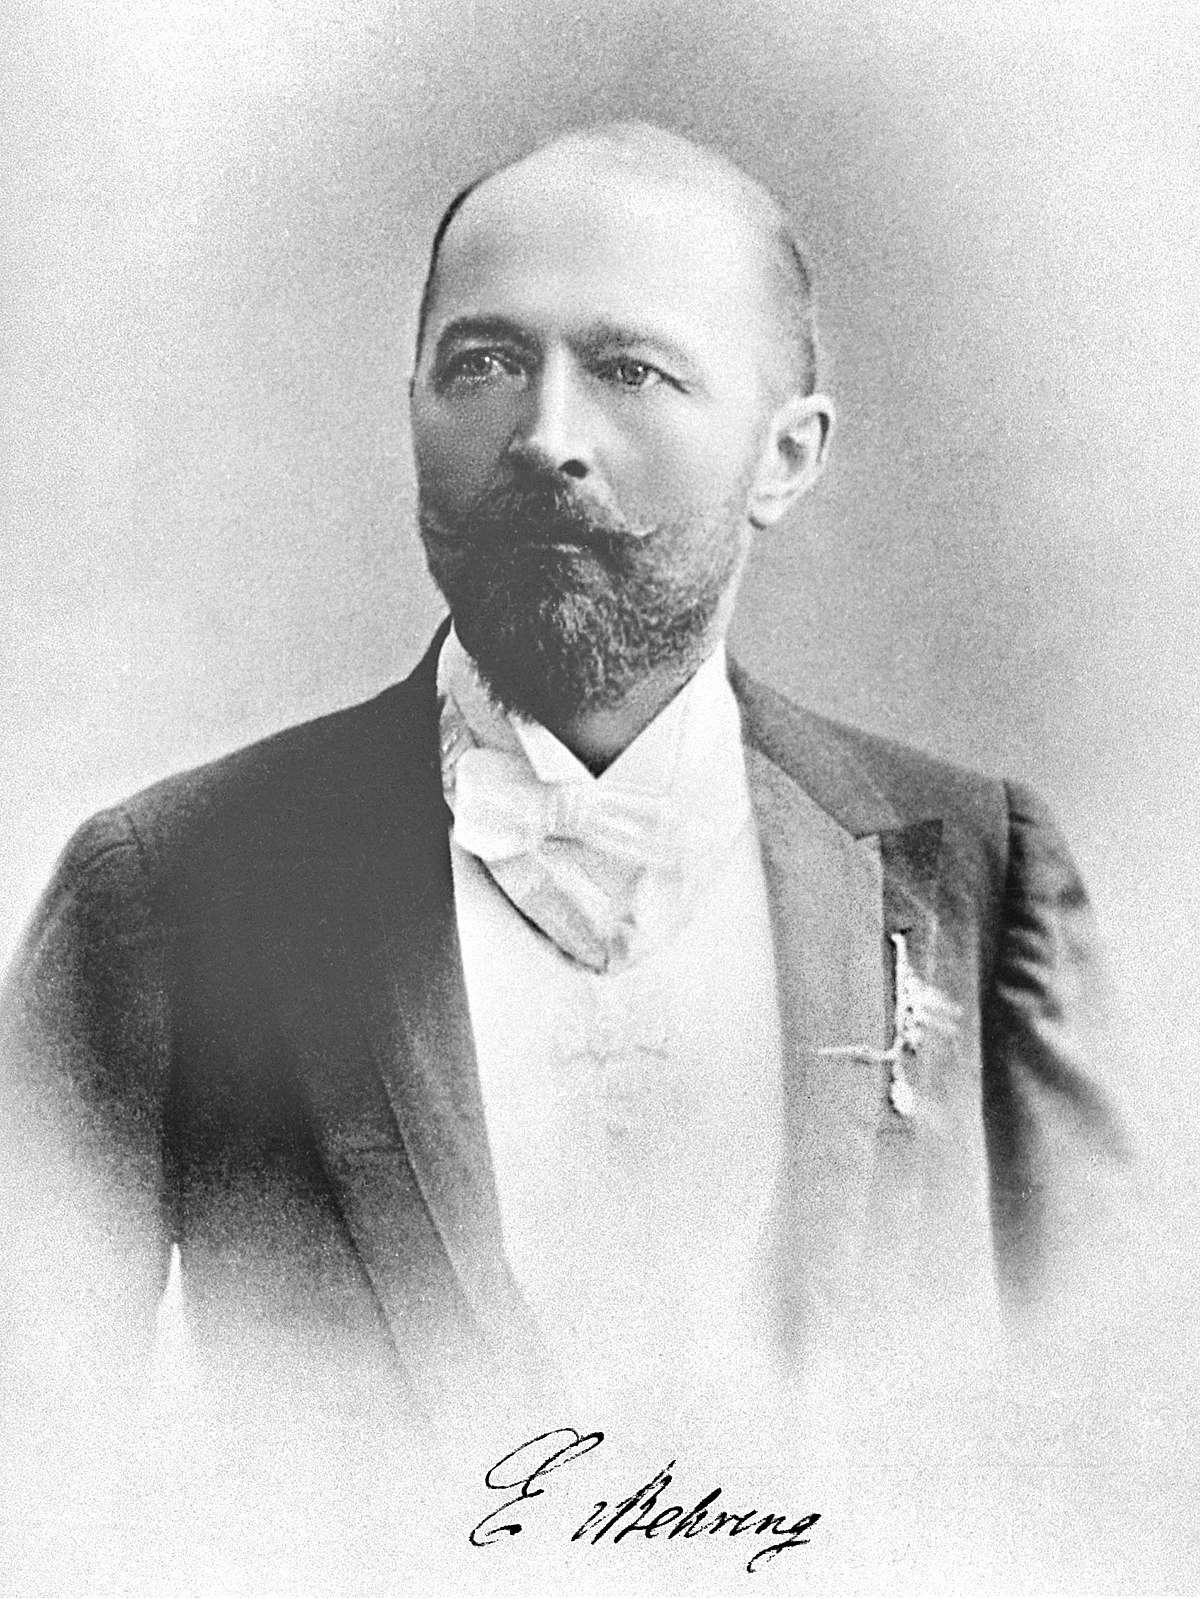 Emil Von Behring Wikimedia Commons